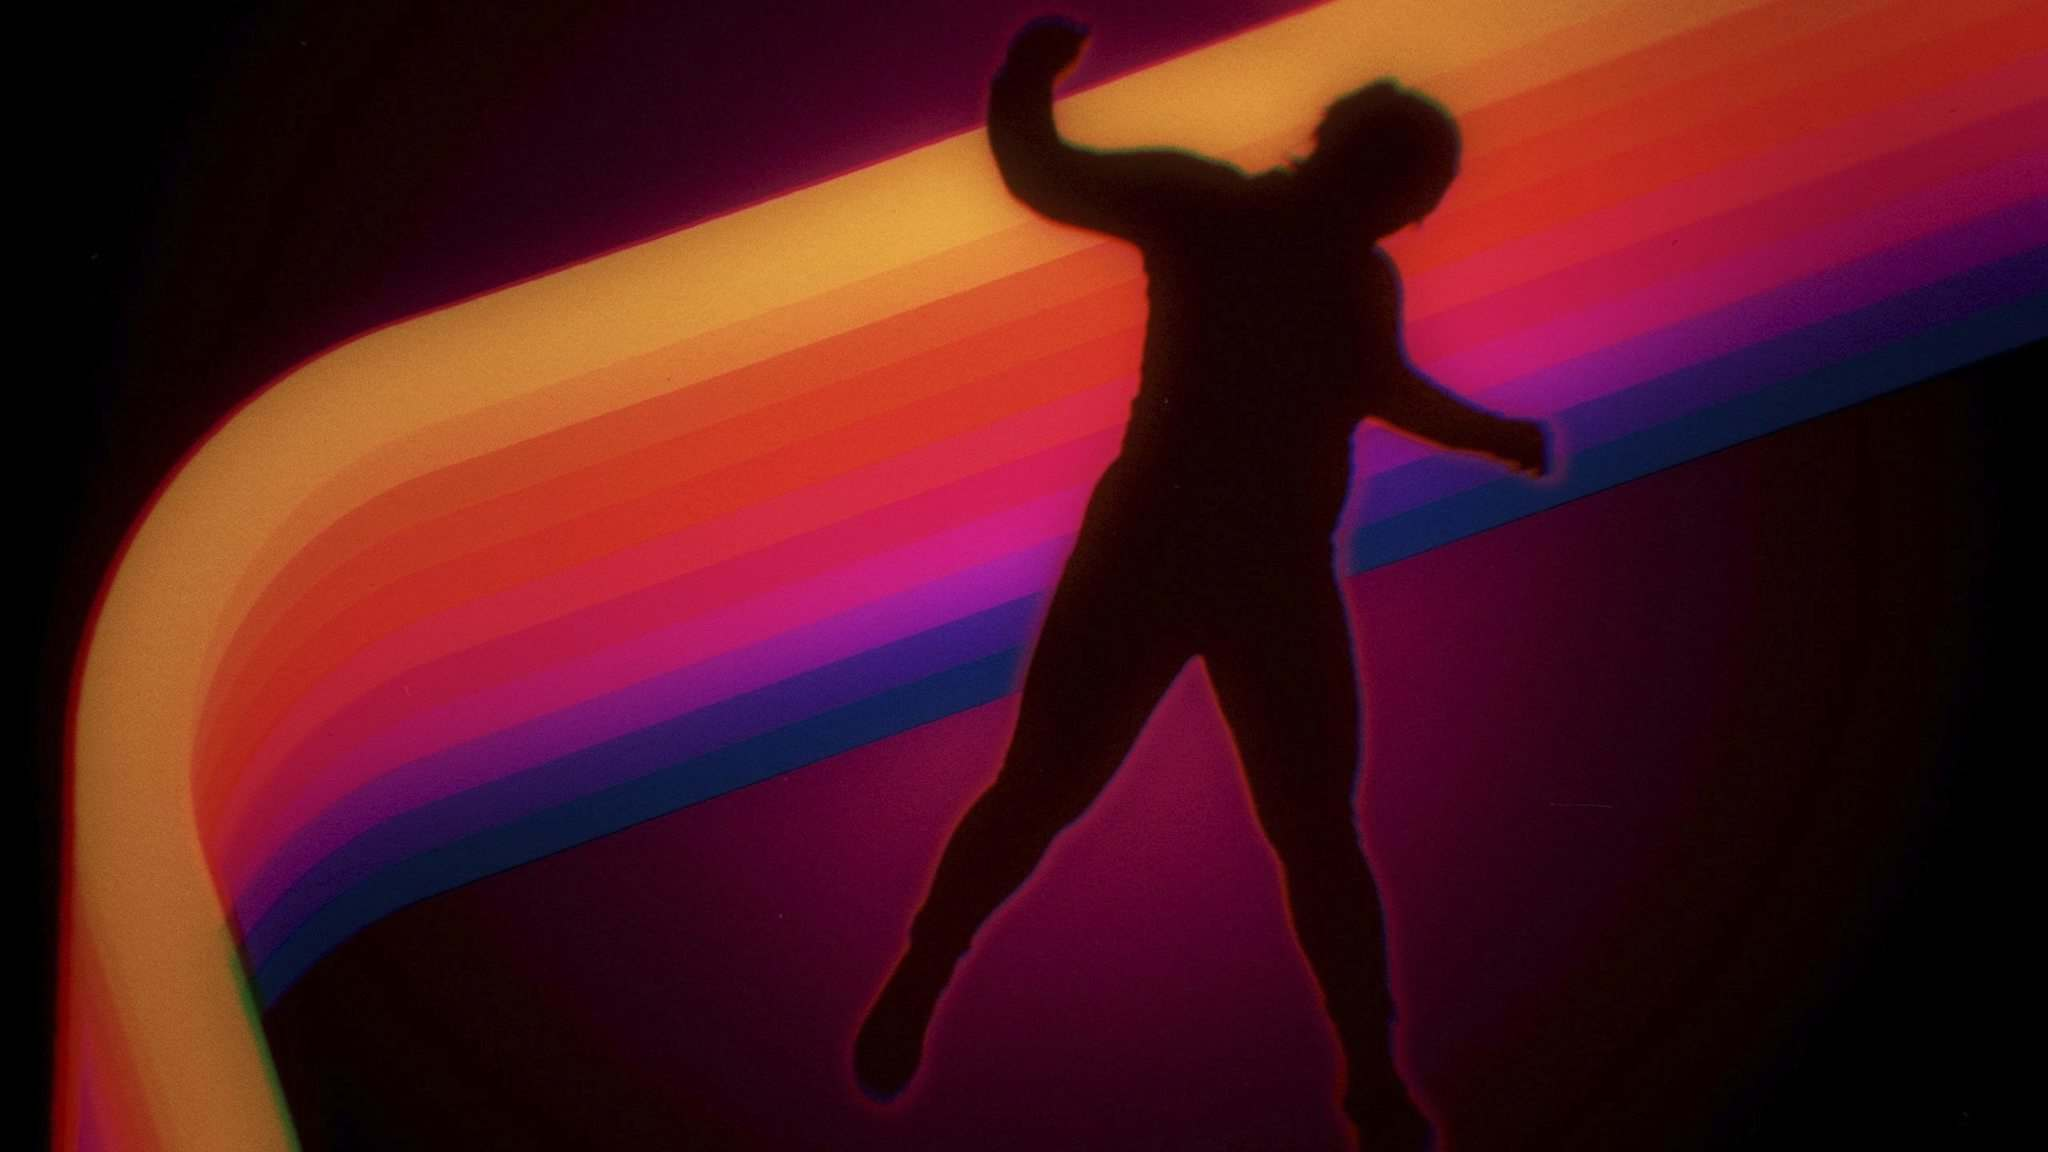 Dancer Maribeth Tabanera is transformed into a silhouette in the music video for Respect the Gift, a new single by singer-songwriter Adrian Sutherland.</p>